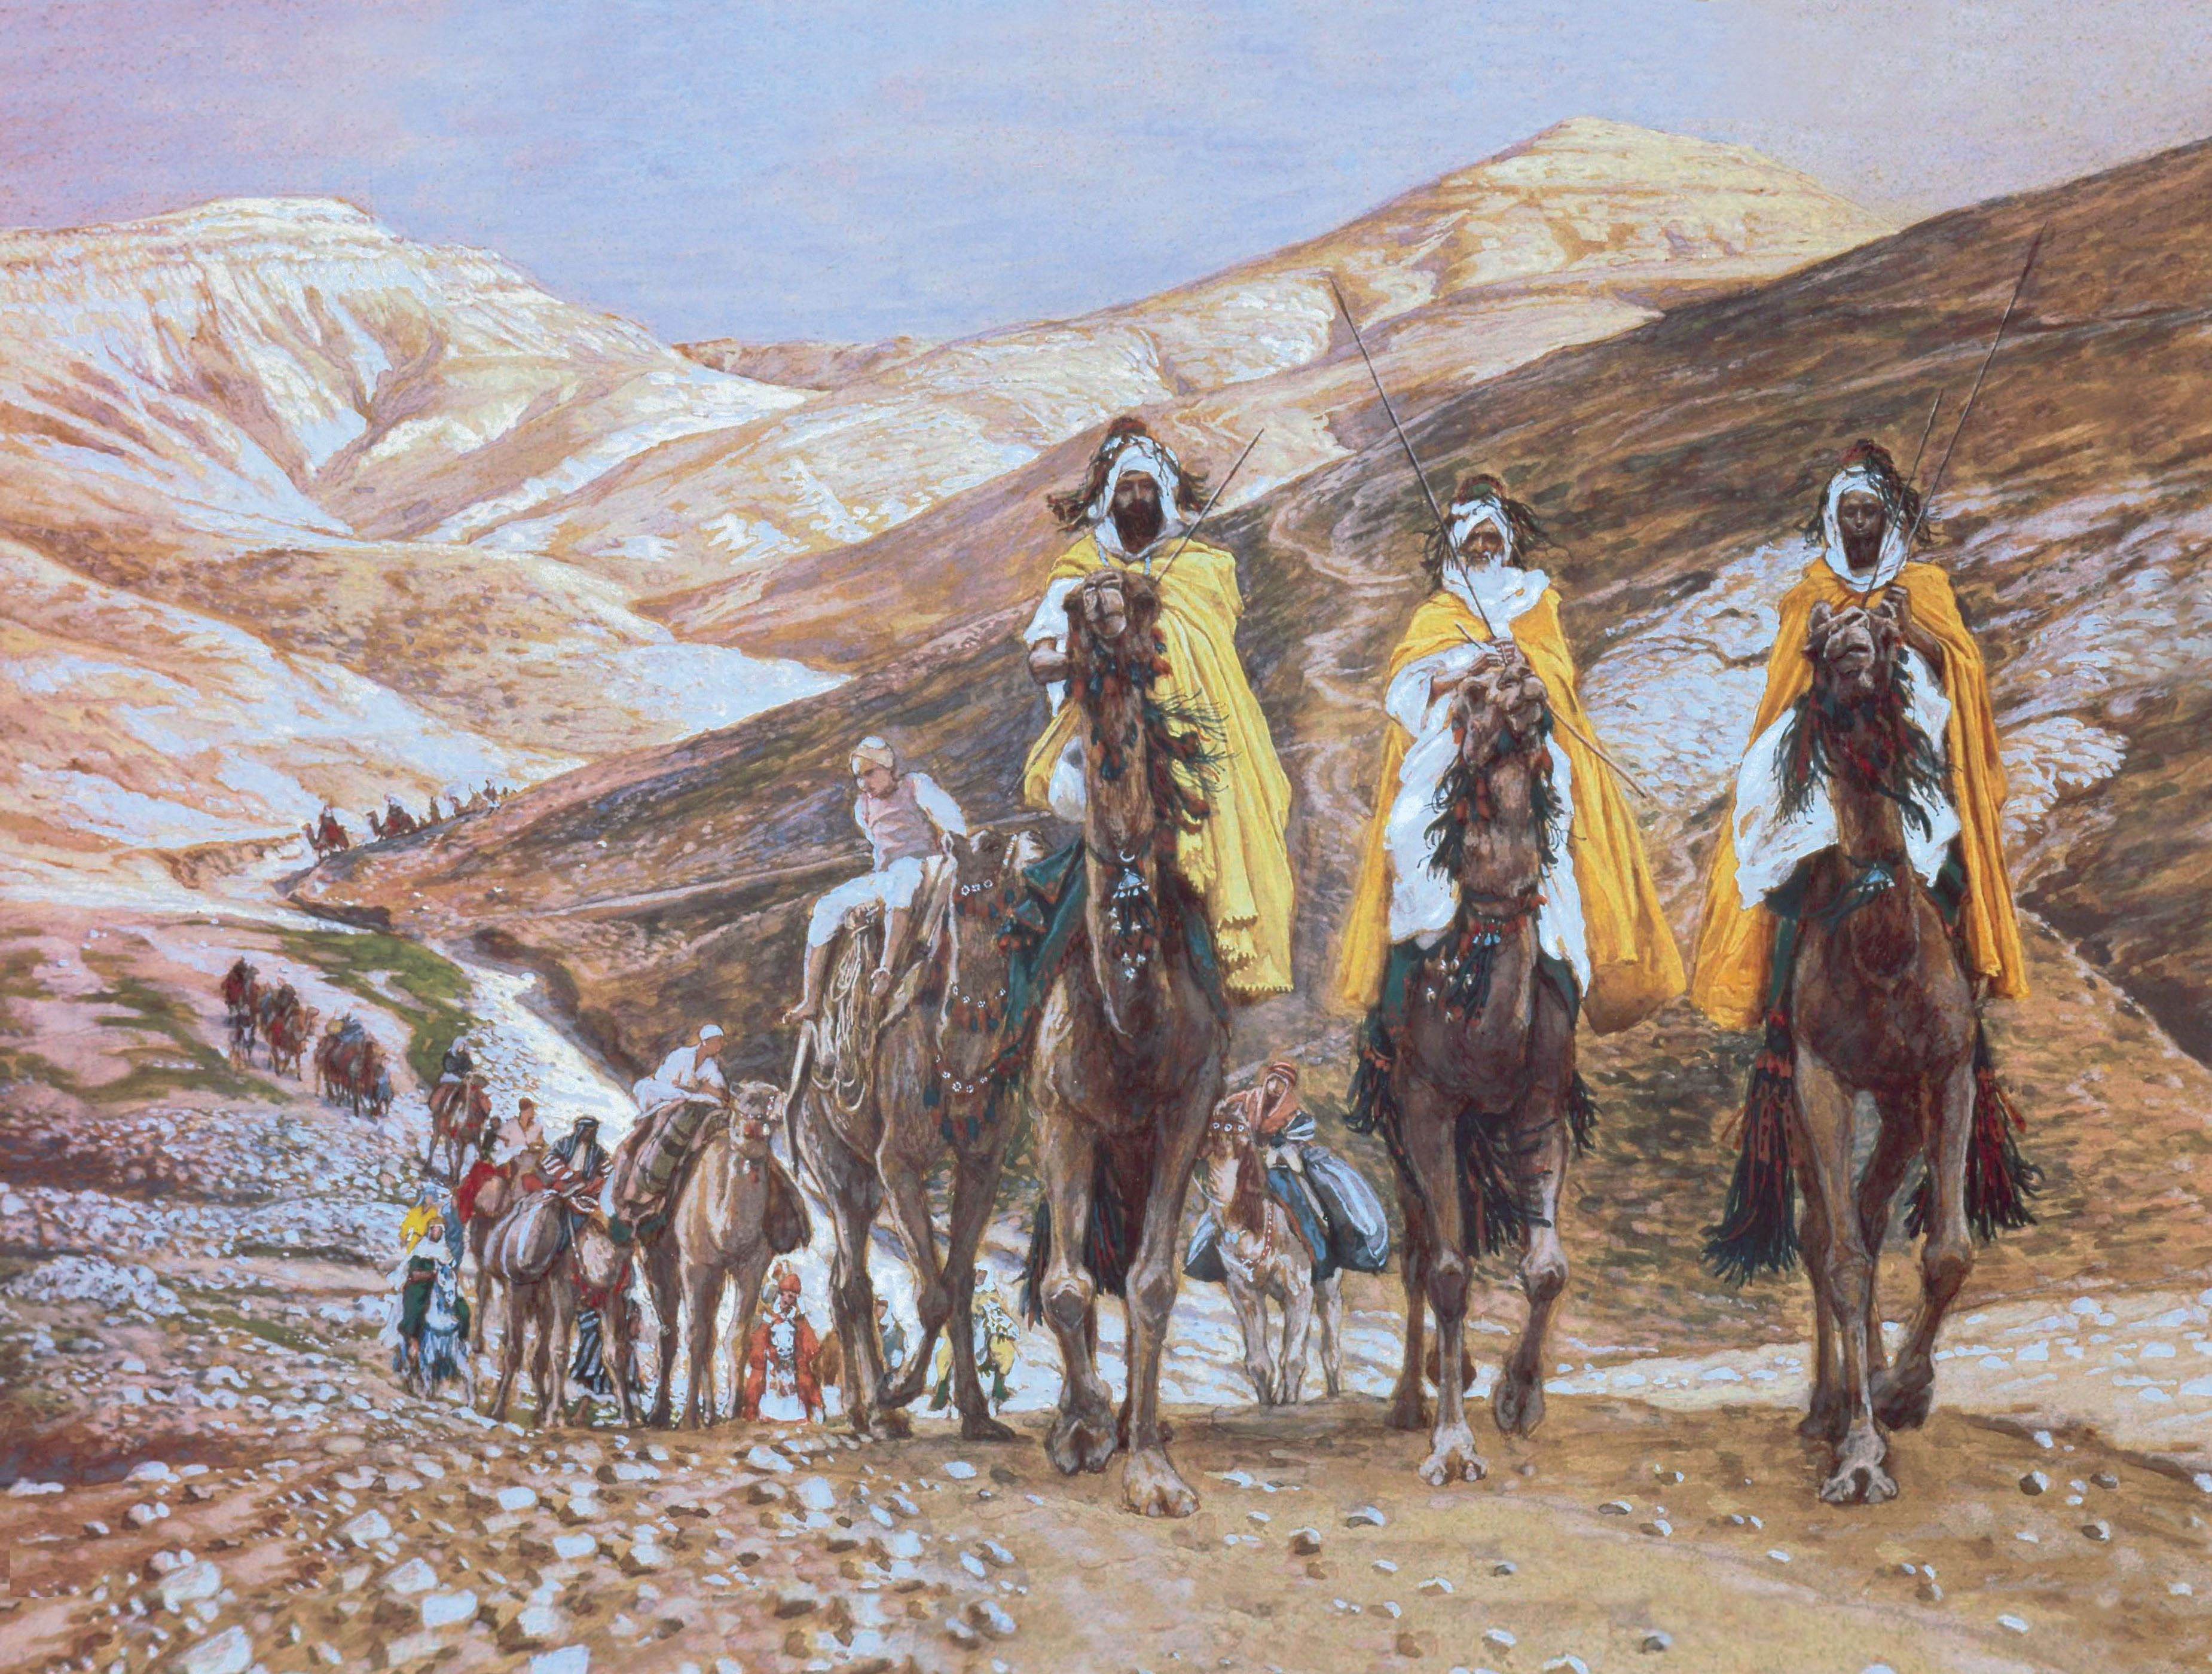 Journey of the Magi, by James Tissot